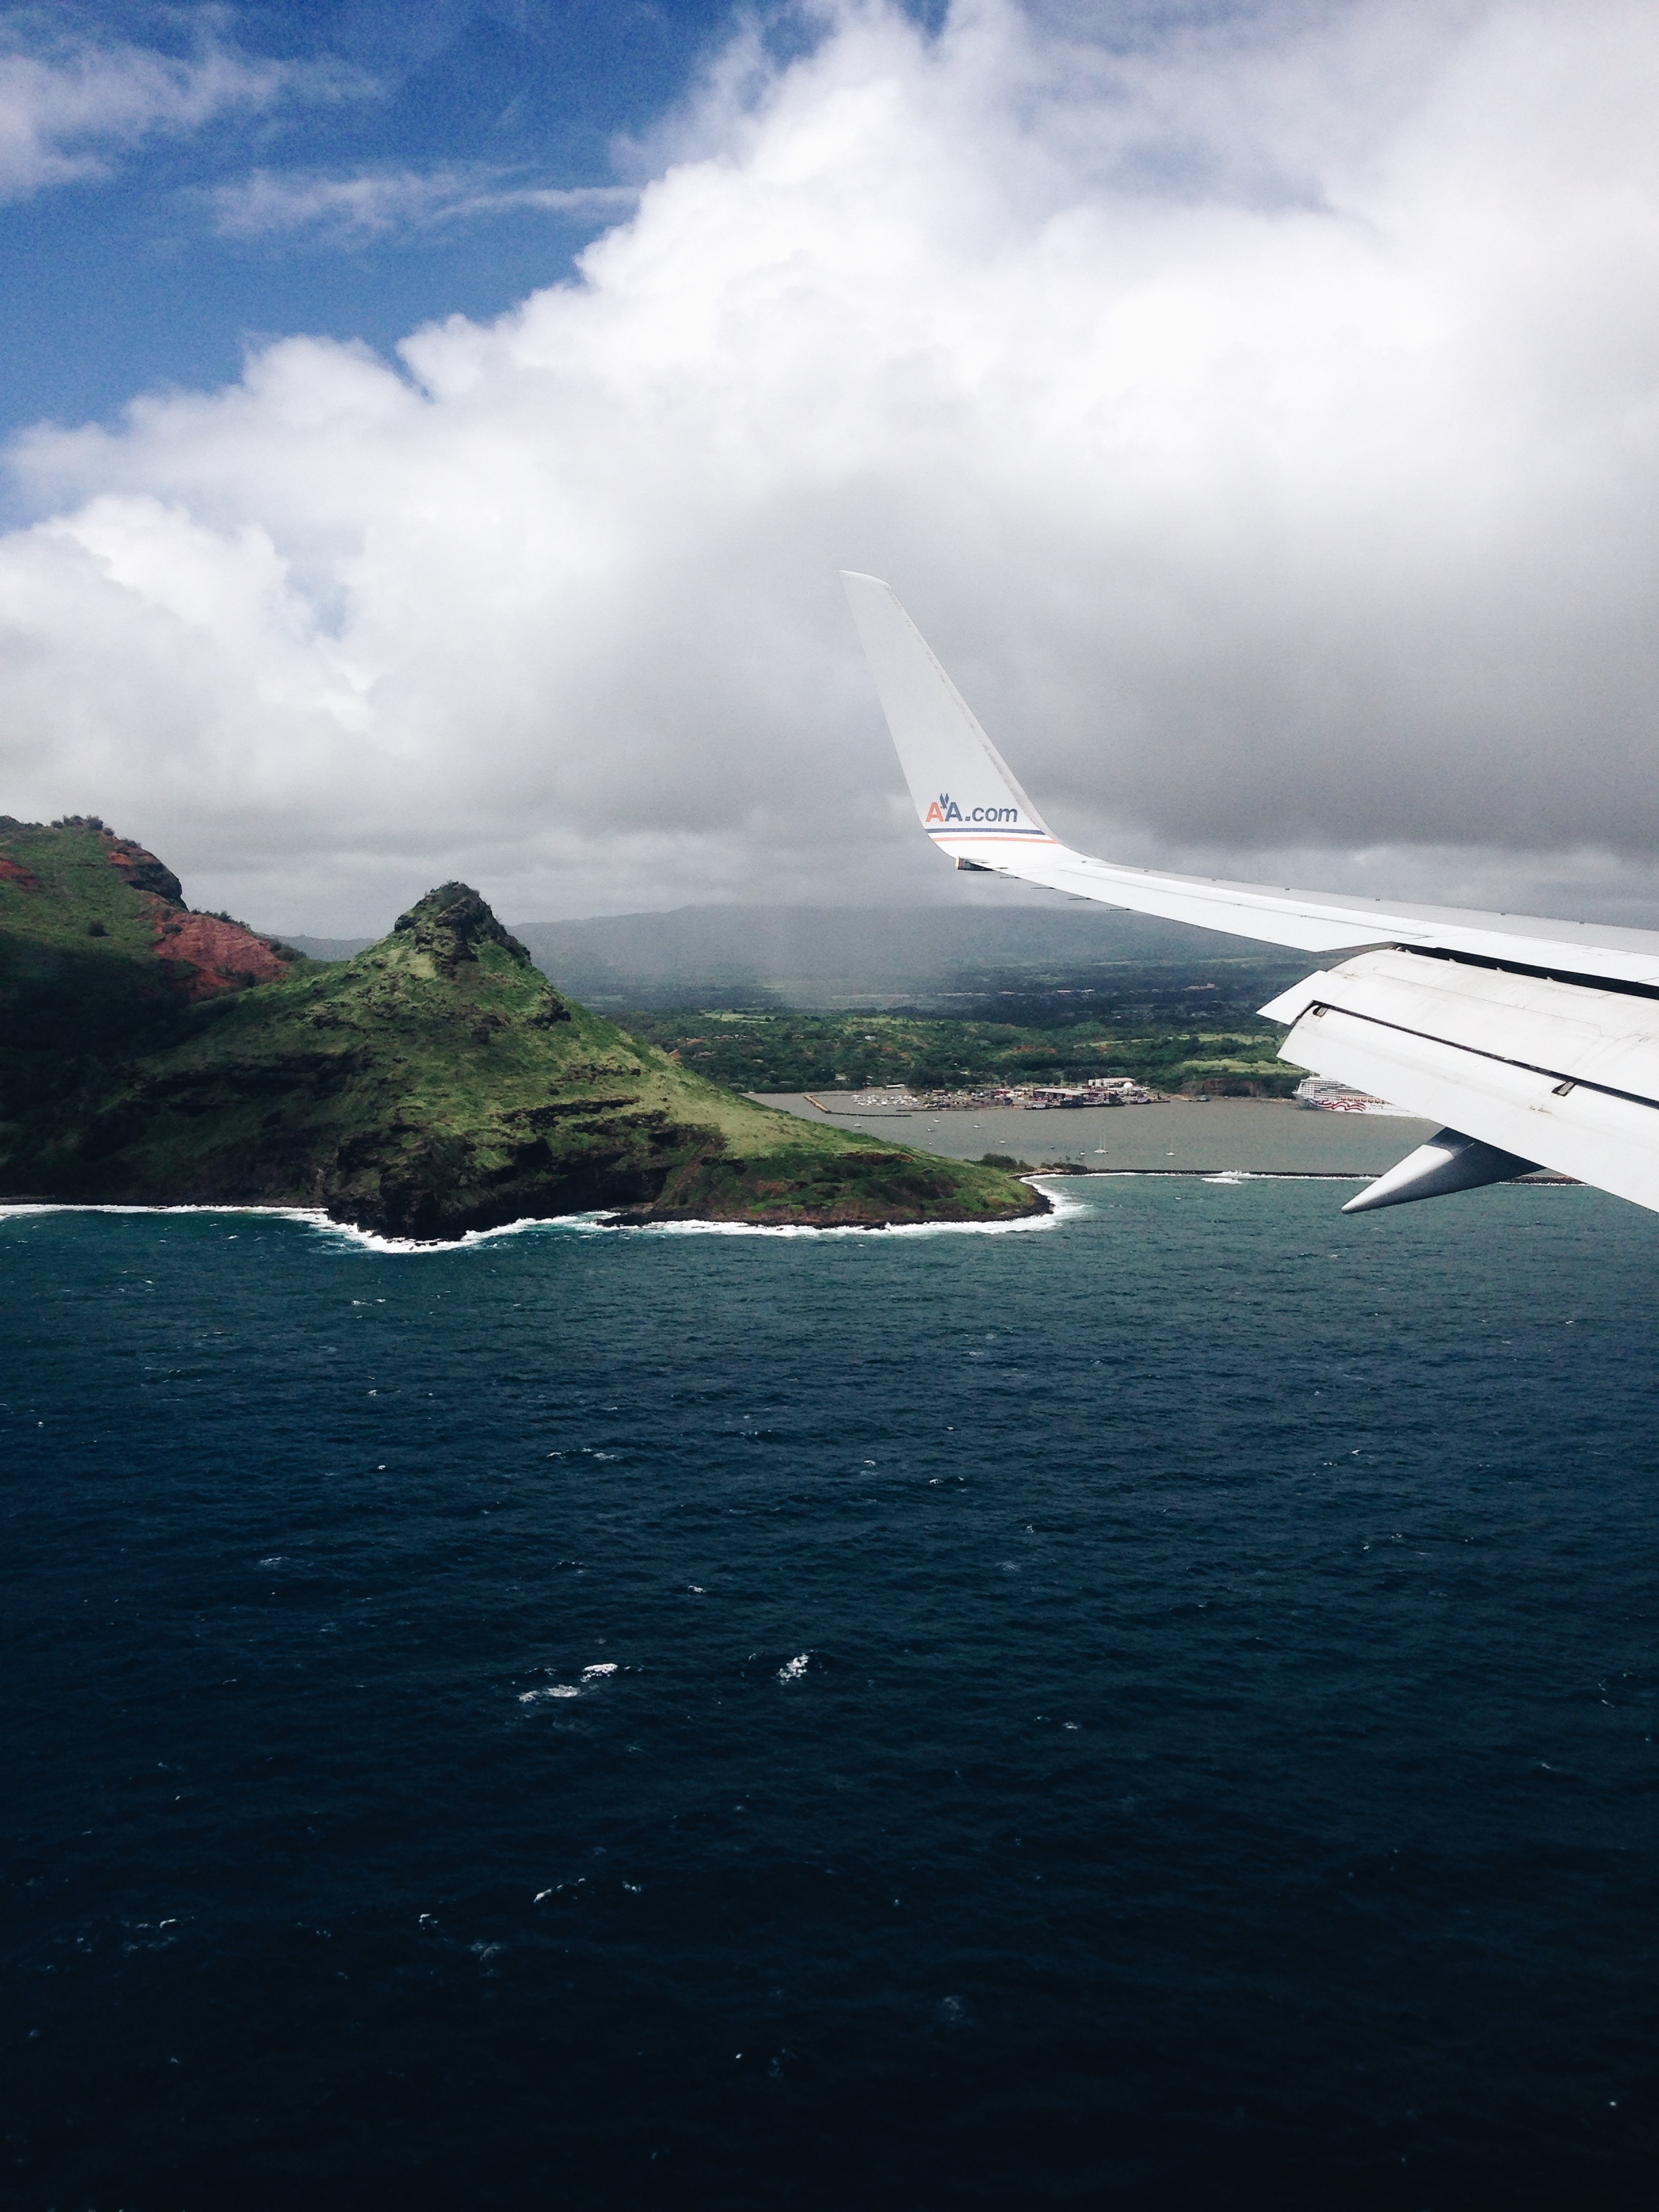 Ariel View of Kauai From an Airplane Window - ELSEWHERE